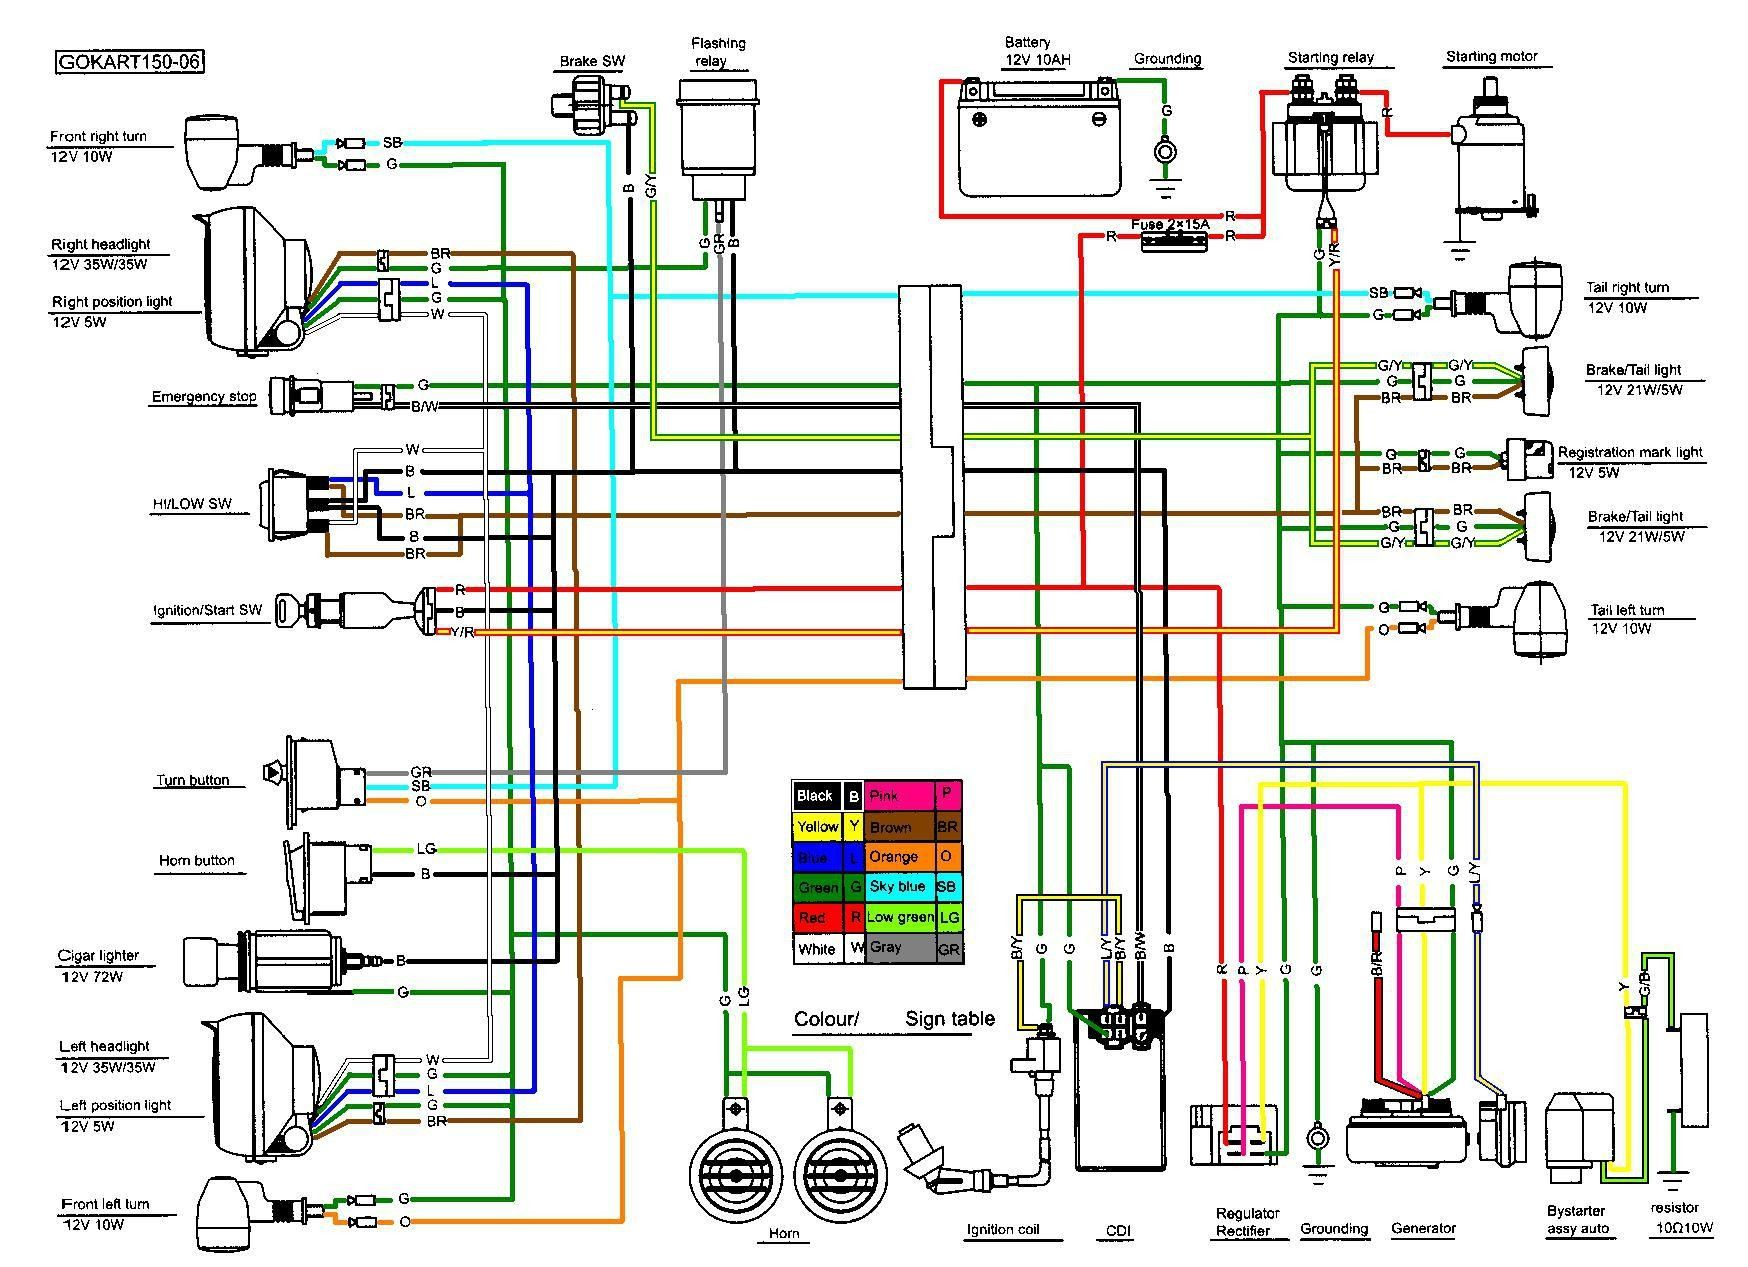 Gy6 Wiring Diagram | Motorcycle wiring, 150cc go kart, 150cc scooter | Gy6 50cc Wiring Diagram Electric Scooters For Sale |  | Pinterest